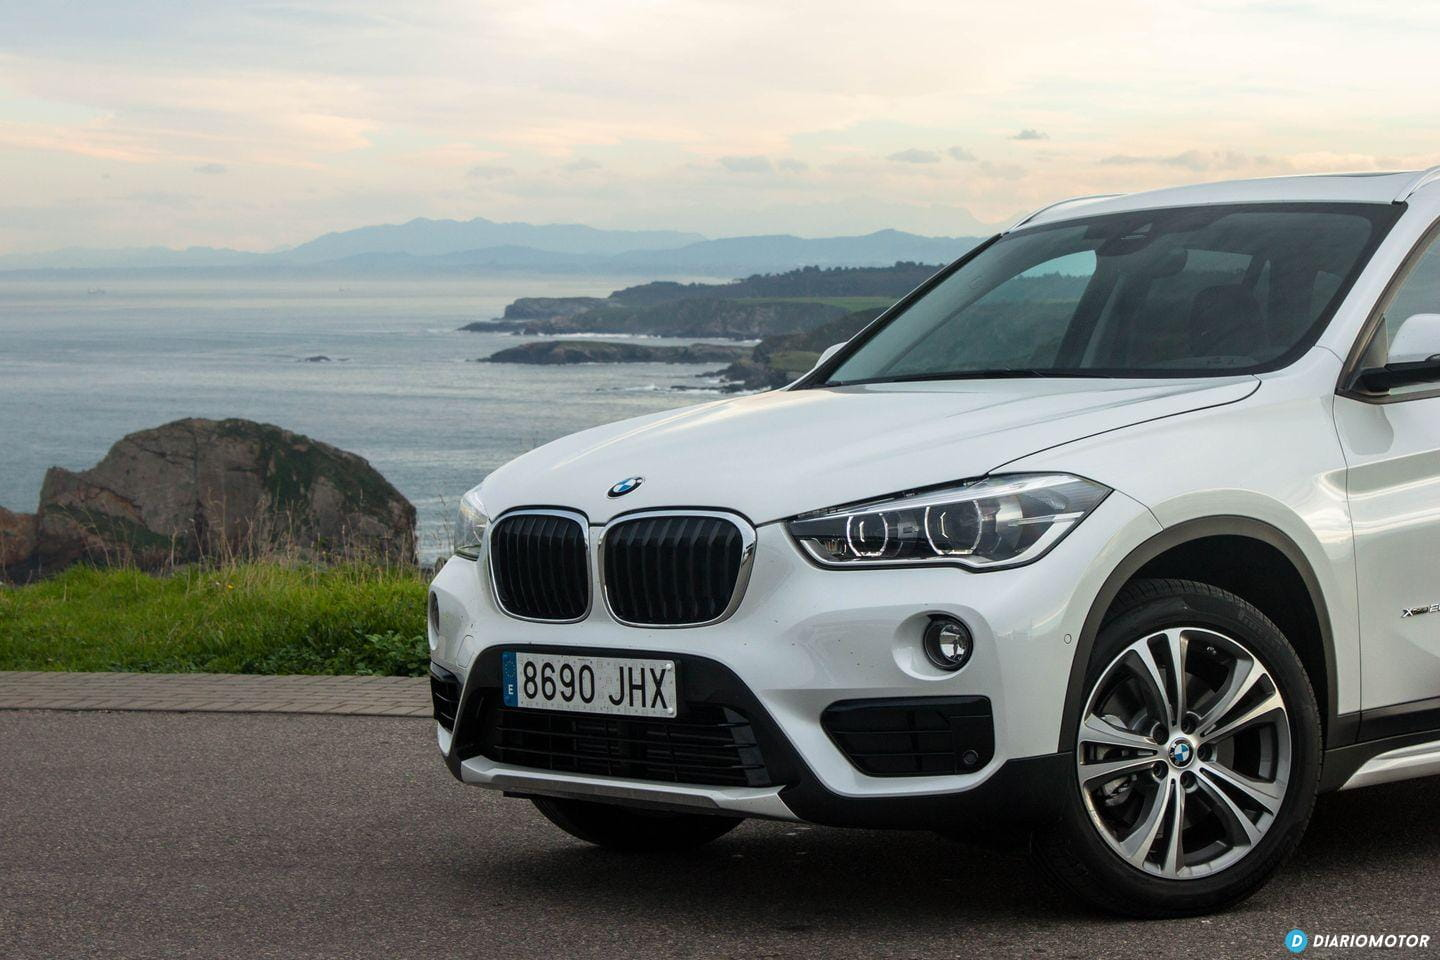 bmw x1 2016 xdrive20d prueba del suv di sel de 190 cv. Black Bedroom Furniture Sets. Home Design Ideas